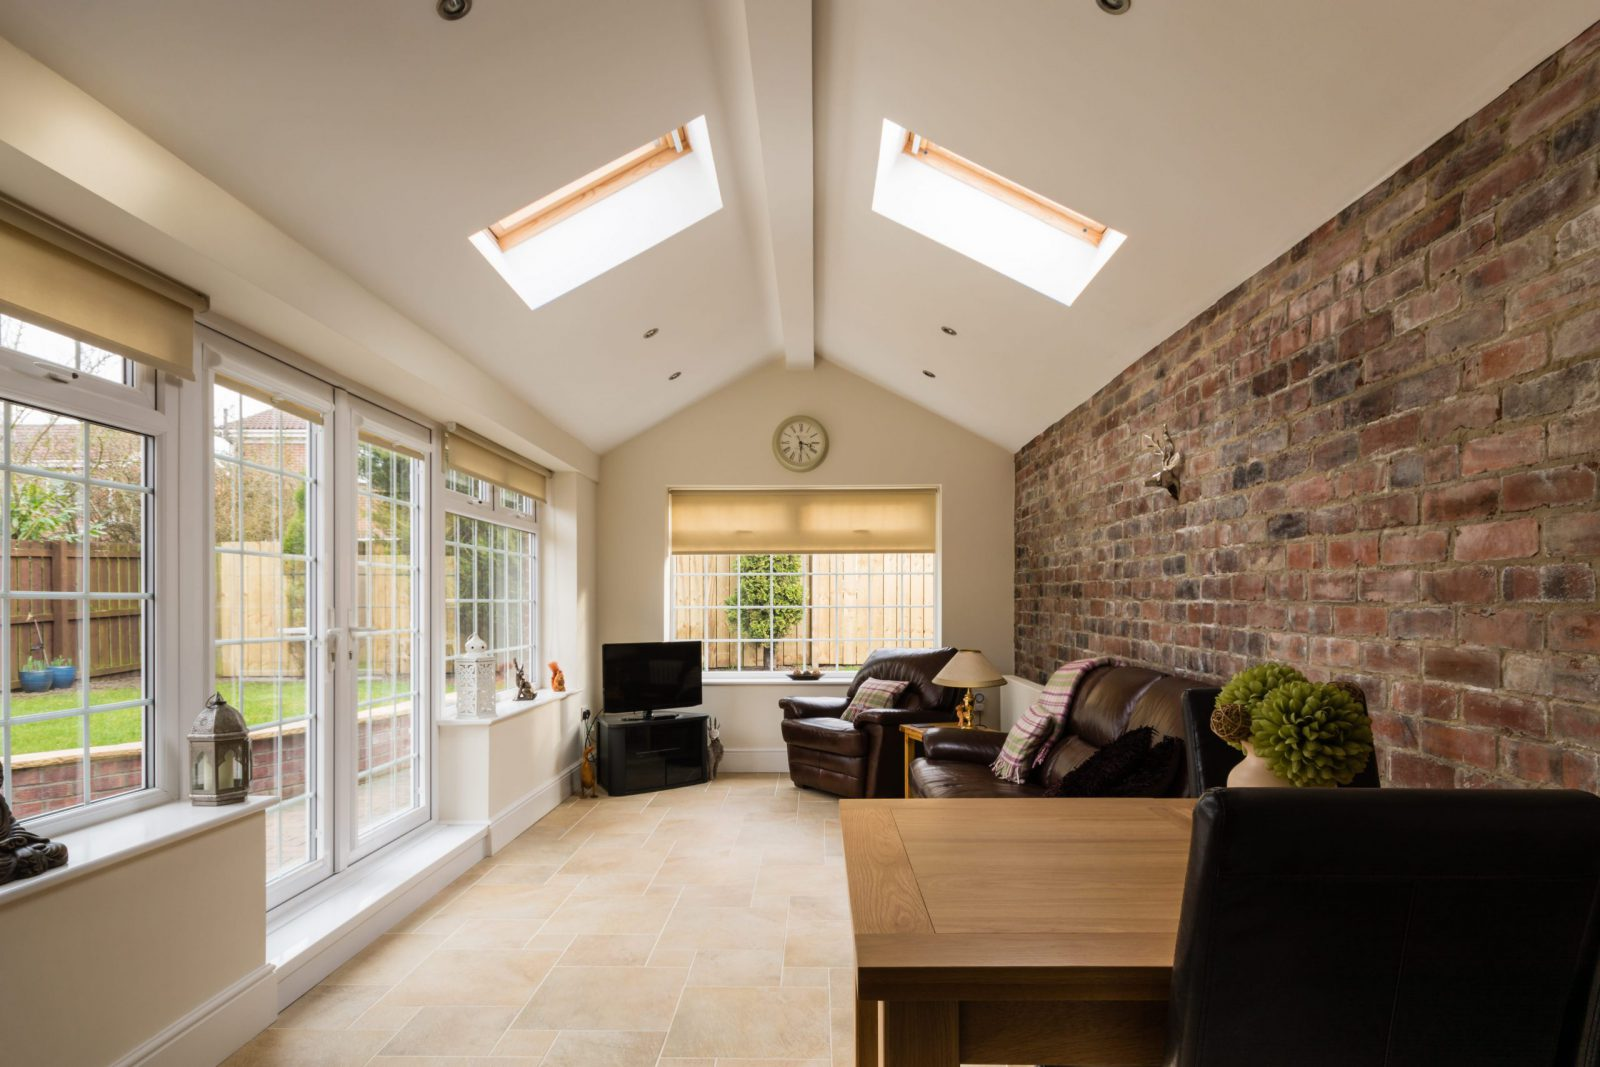 house-extensions-London-building-an-extension-on-a-house